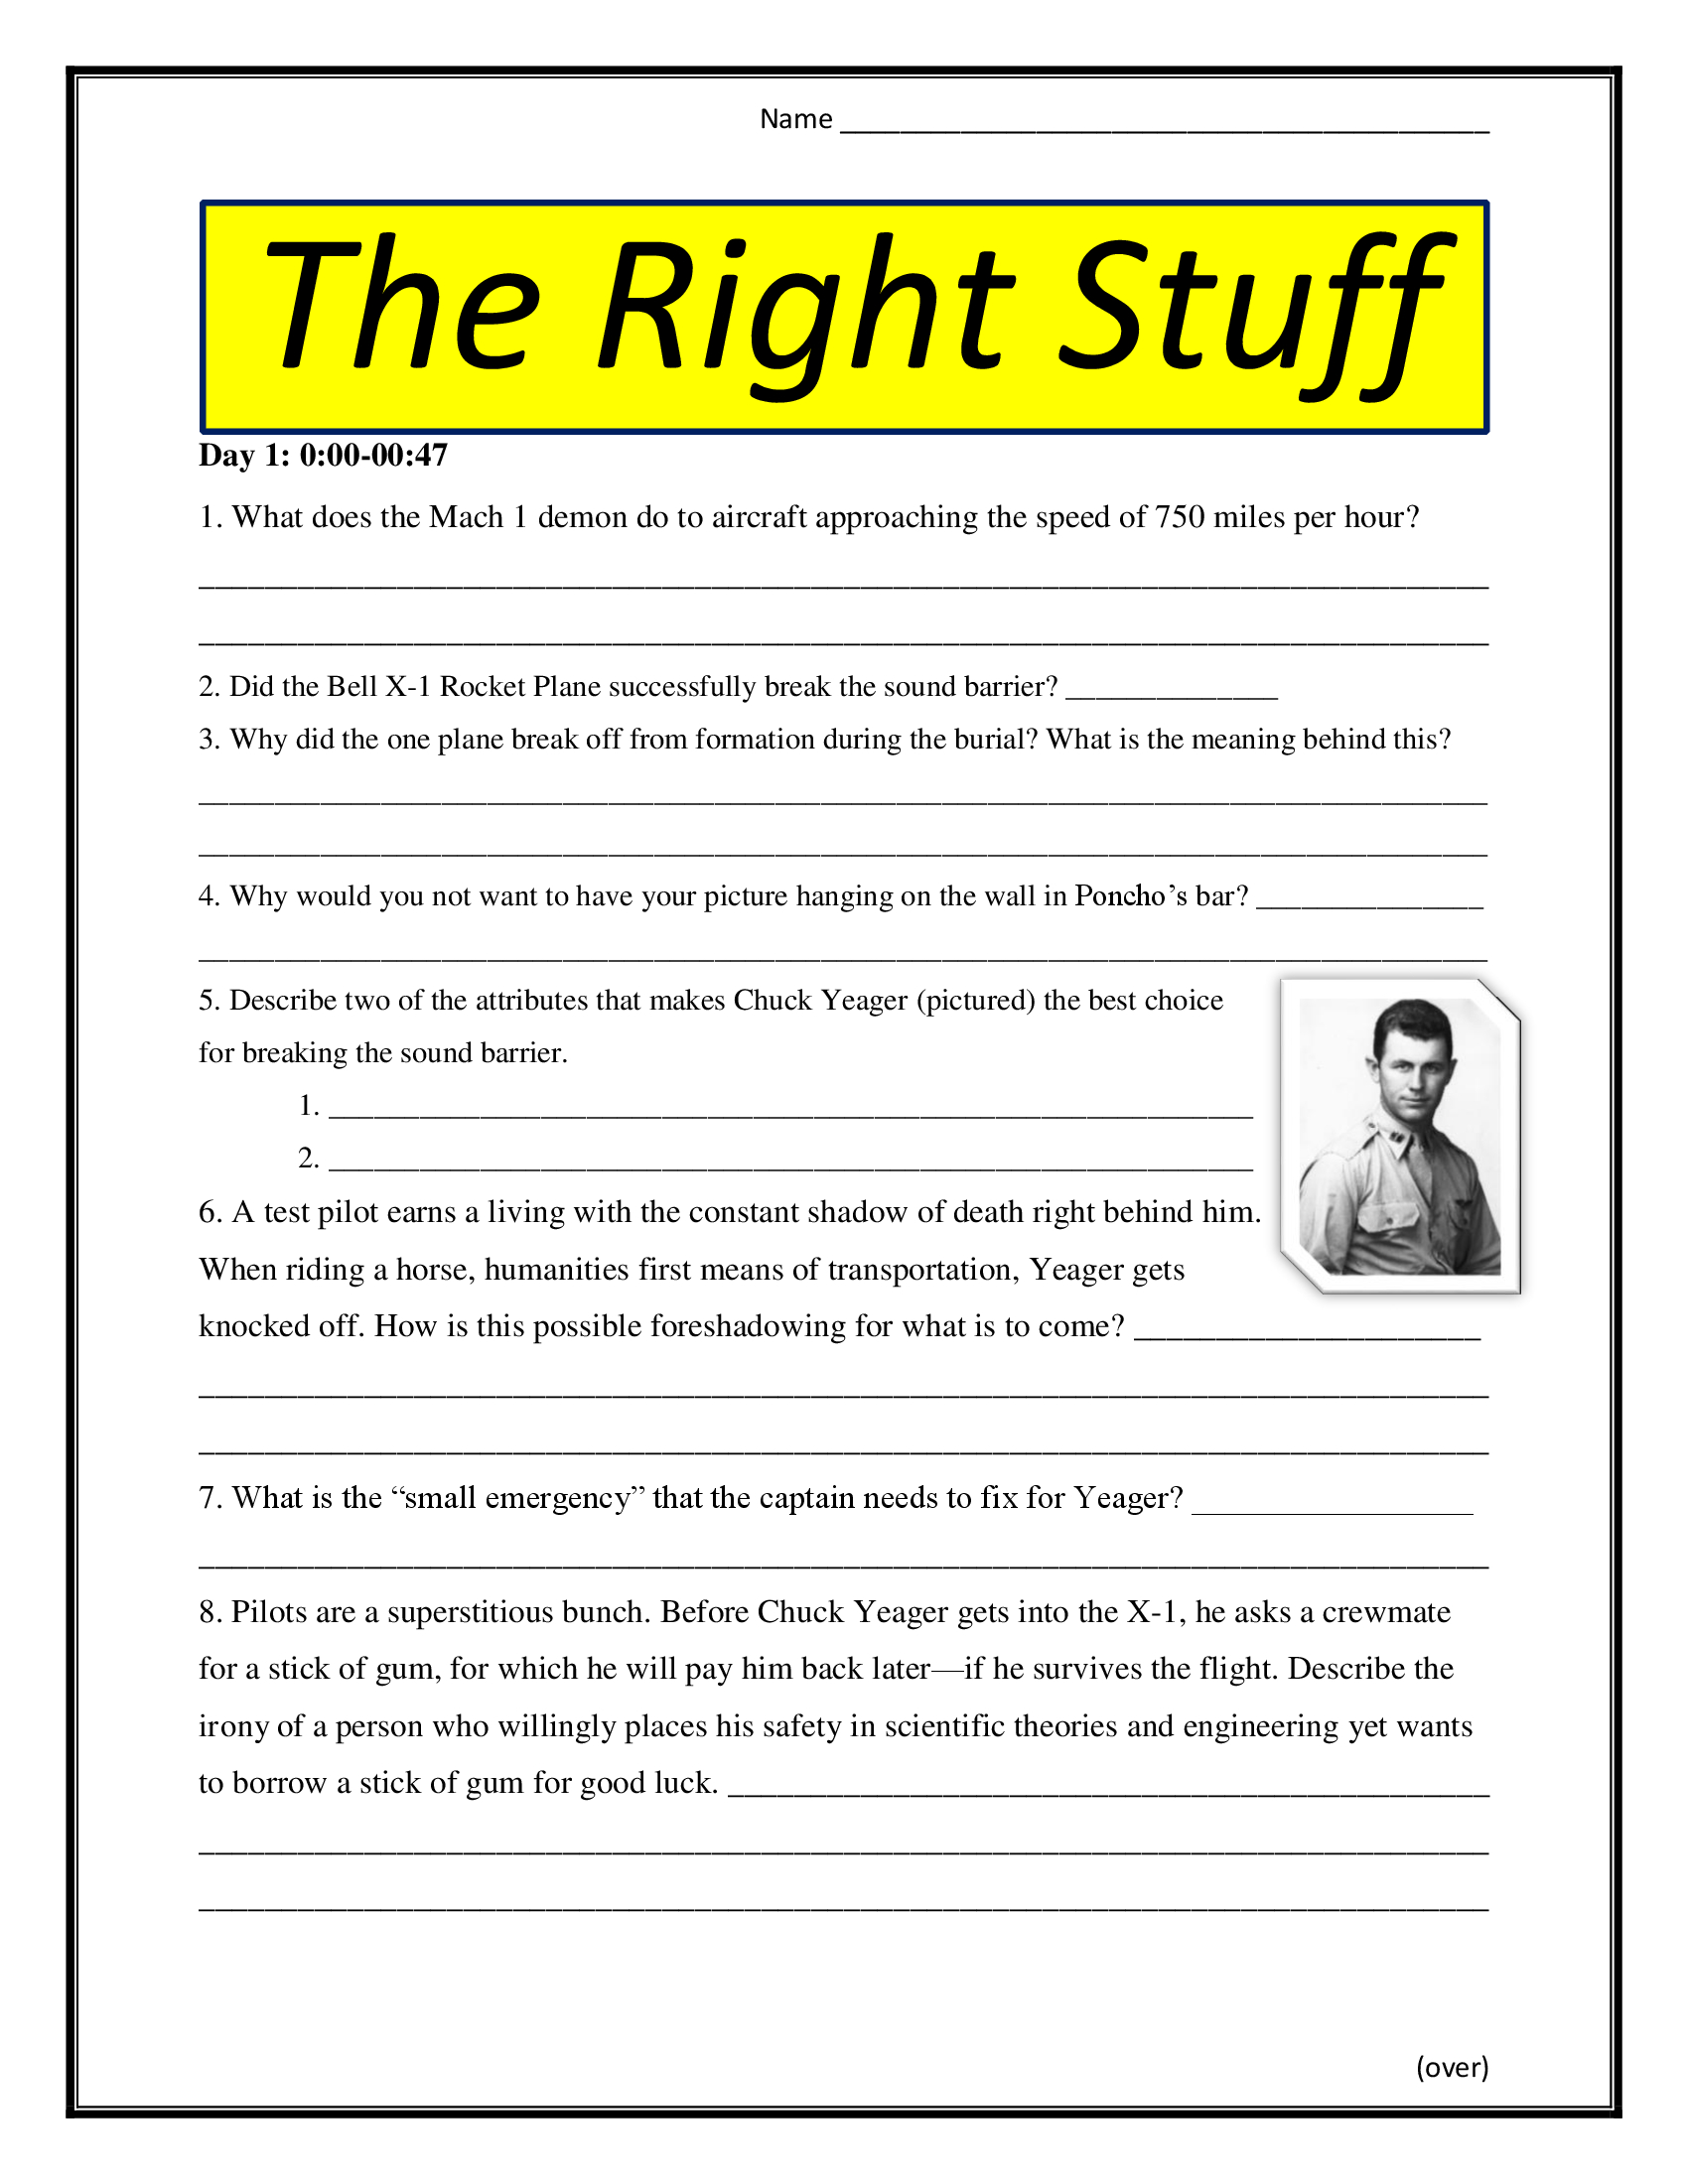 The Right Stuff Movie Worksheet Pg